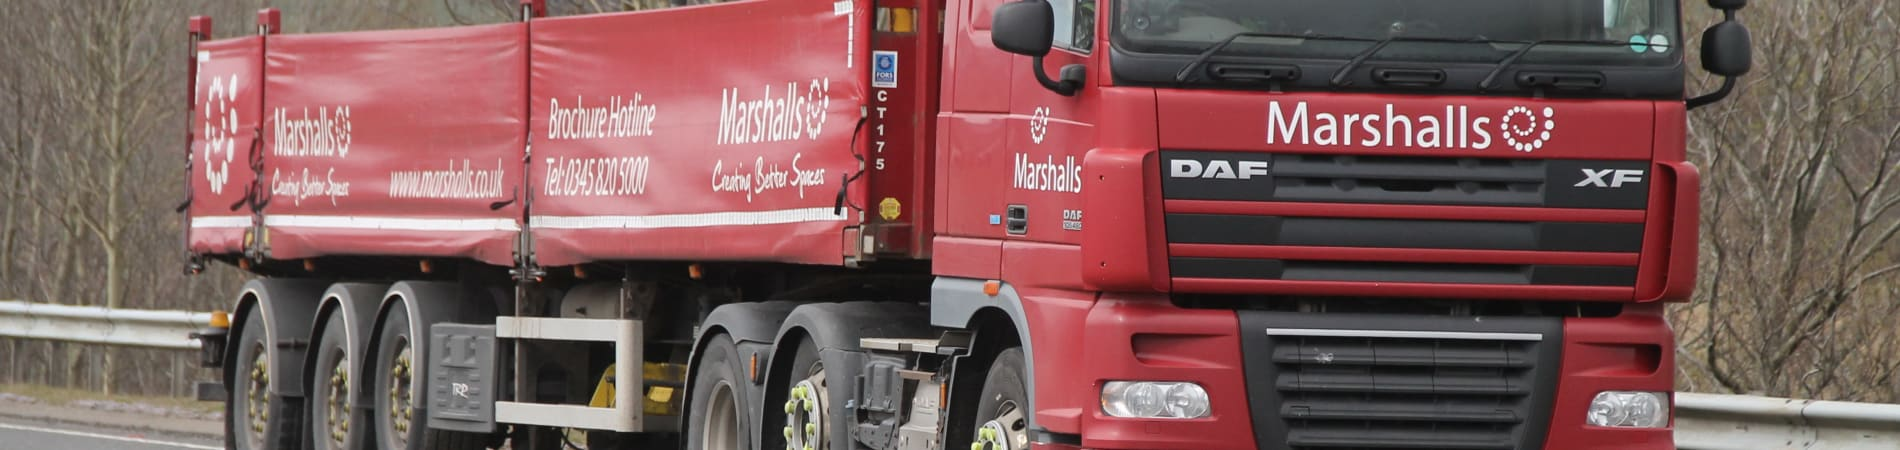 Marshalls launch extended delivery options exclusively for Merchants